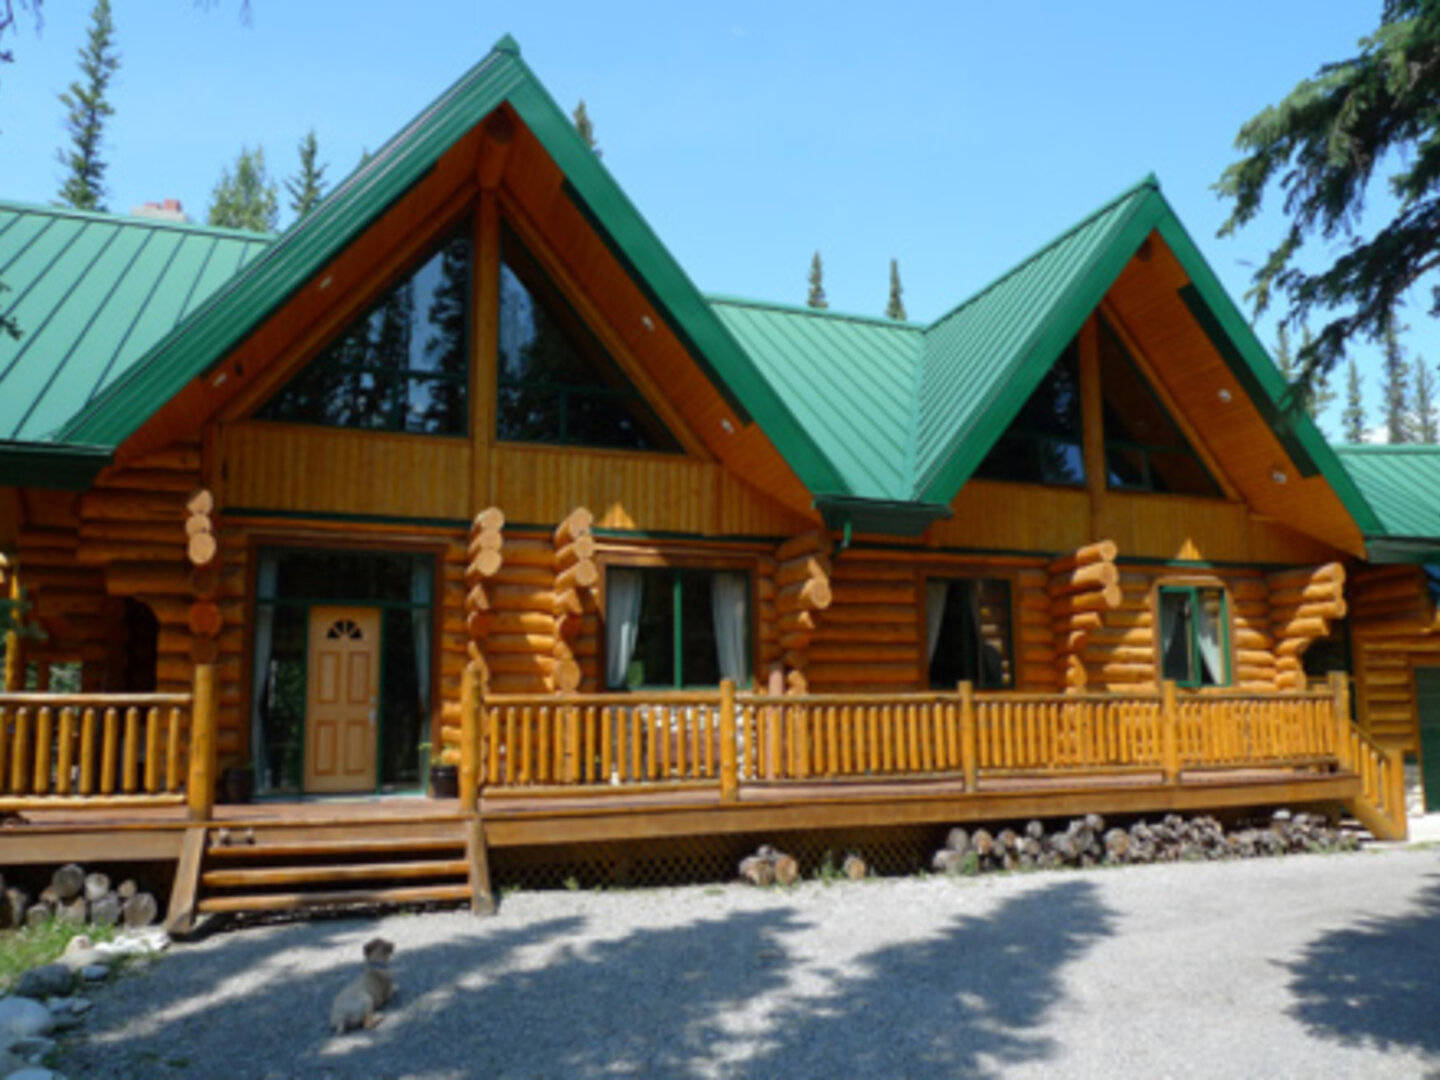 A wooden house at Riverside Chateau.